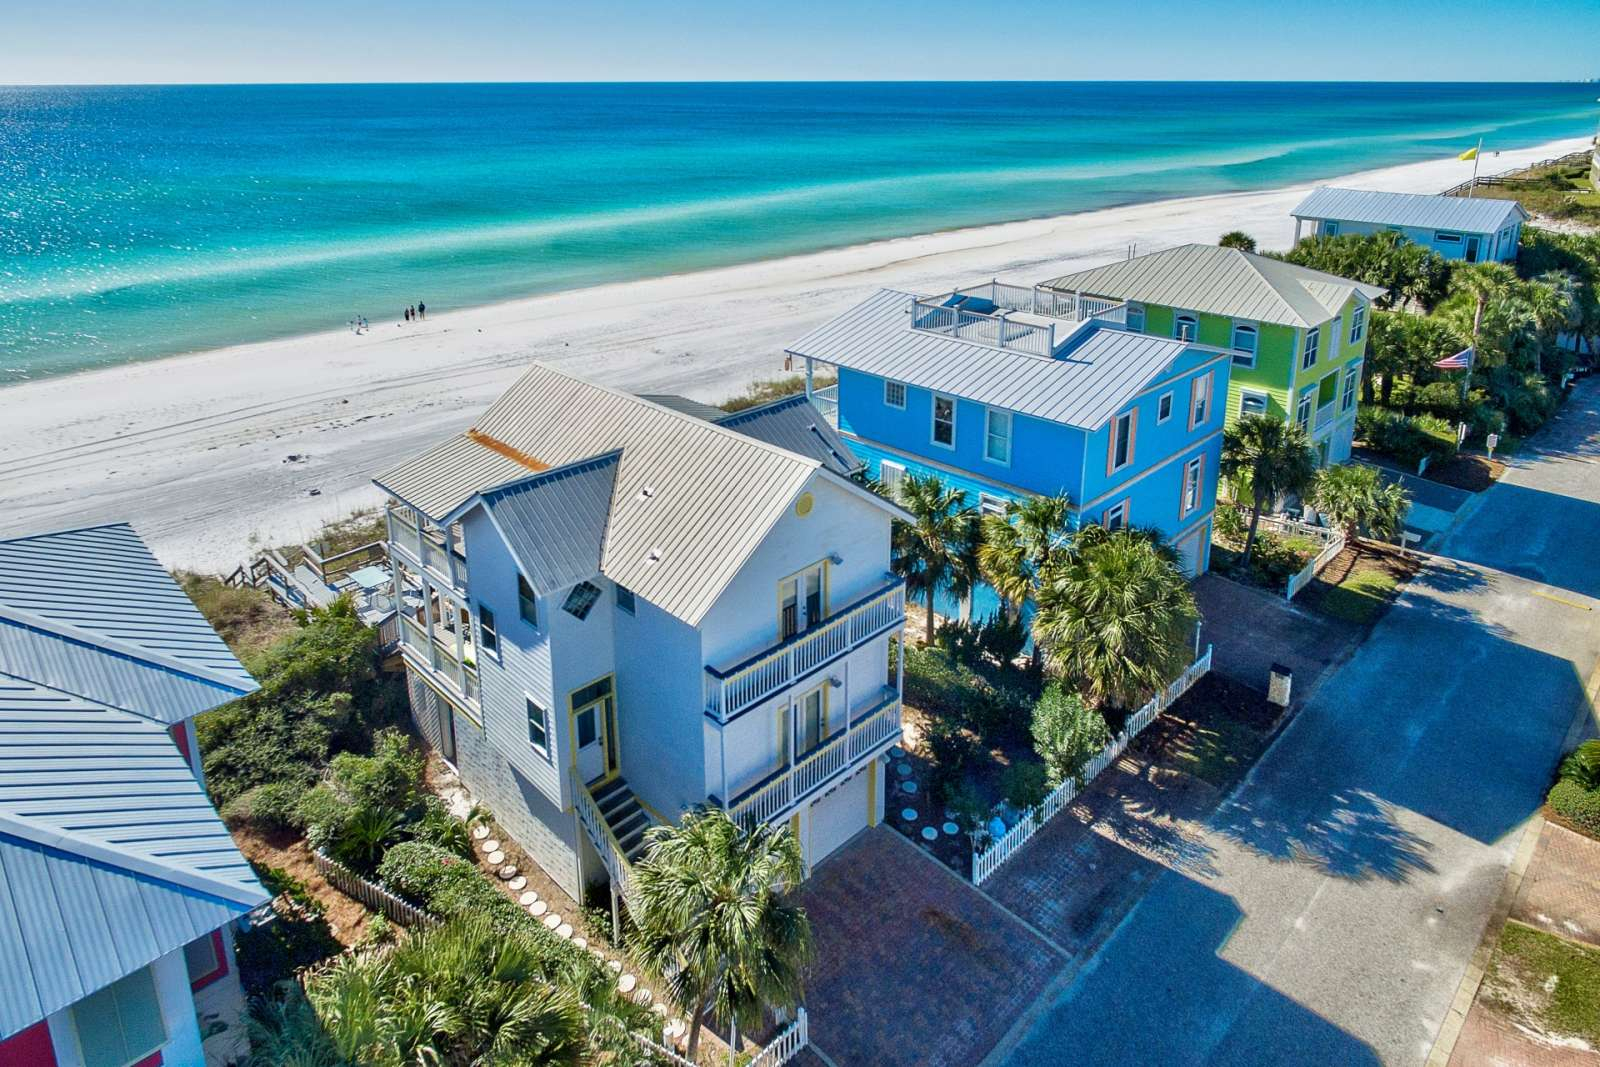 Florida Gulf Coast Charming Beach Towns In The Panhandle